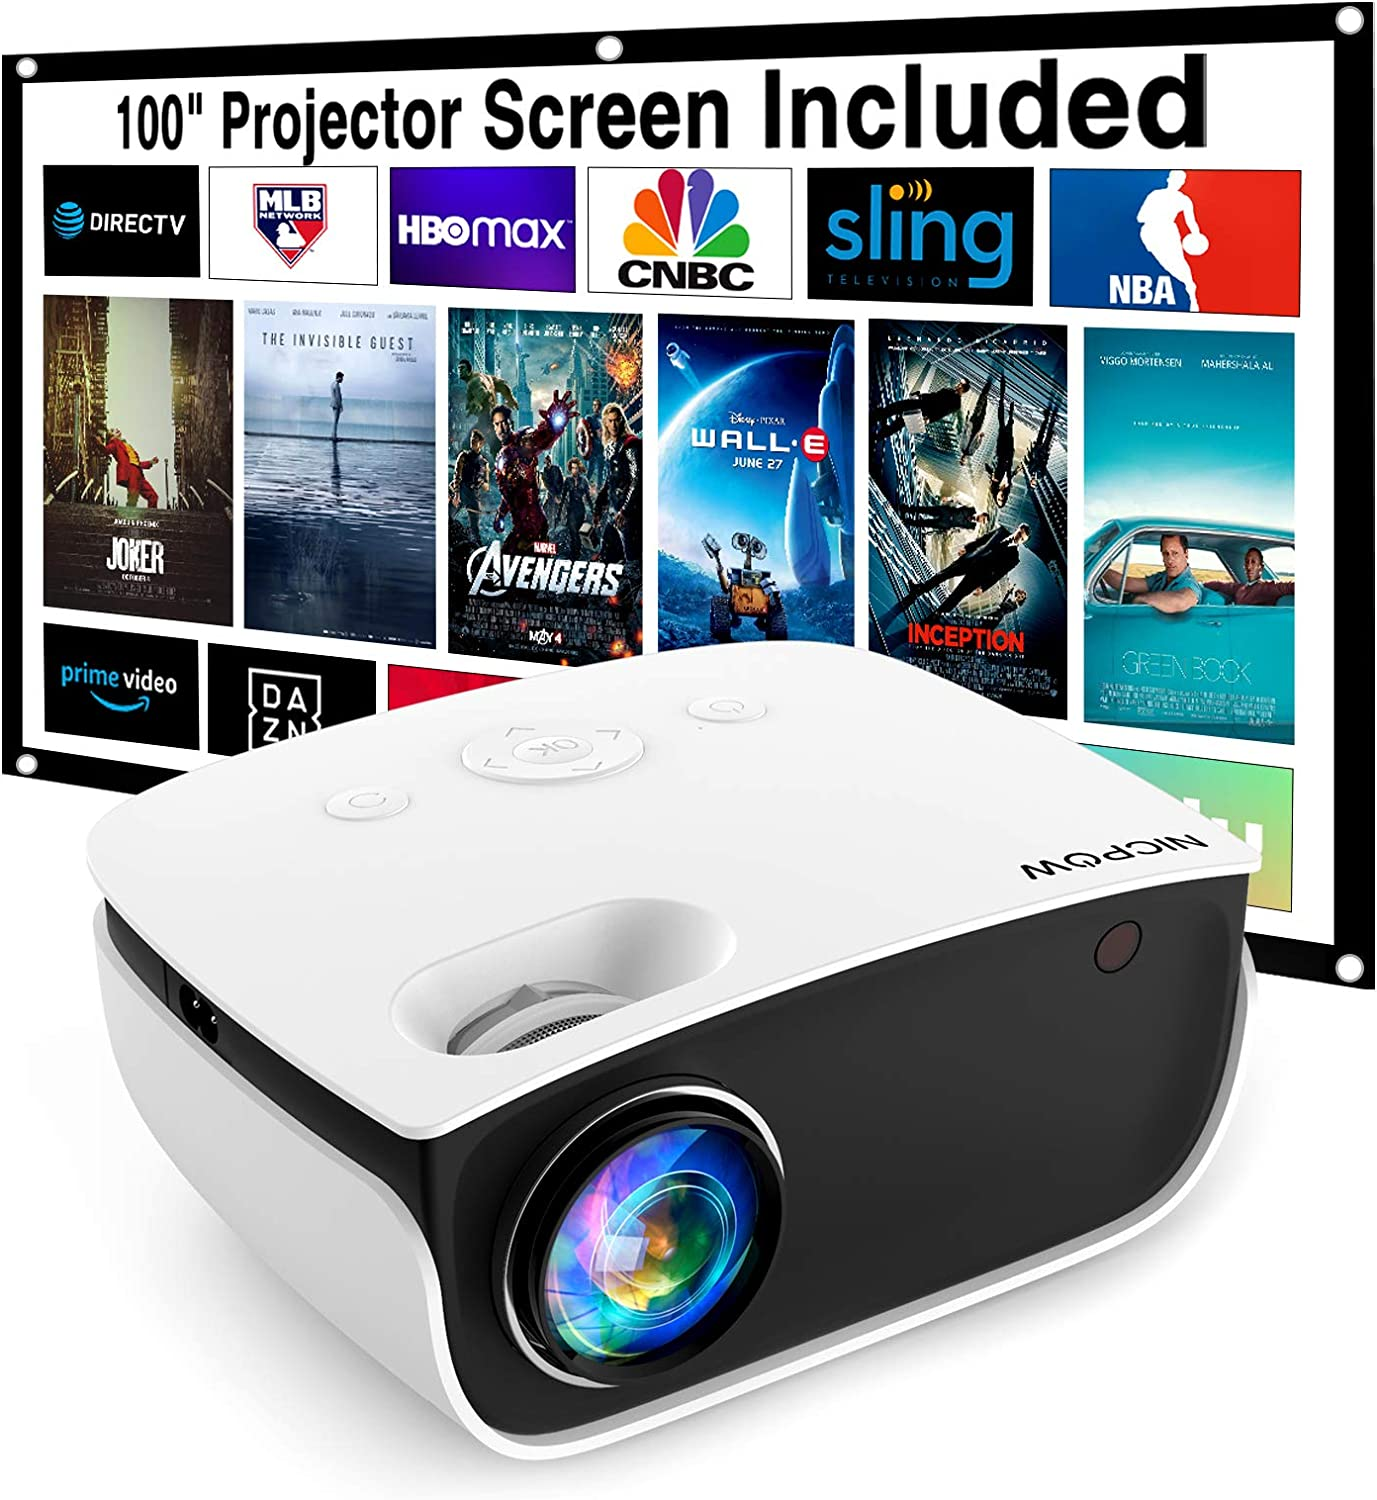 """Video Projector,NICPOW 5500 Lux Mini Projector with 100Inch Projector Screen,1080P and 240""""Supported Outdoor Movie Projector,Compatible with Fire TV Stick,PS4,HDMI,VGA, AV,Smartphone"""